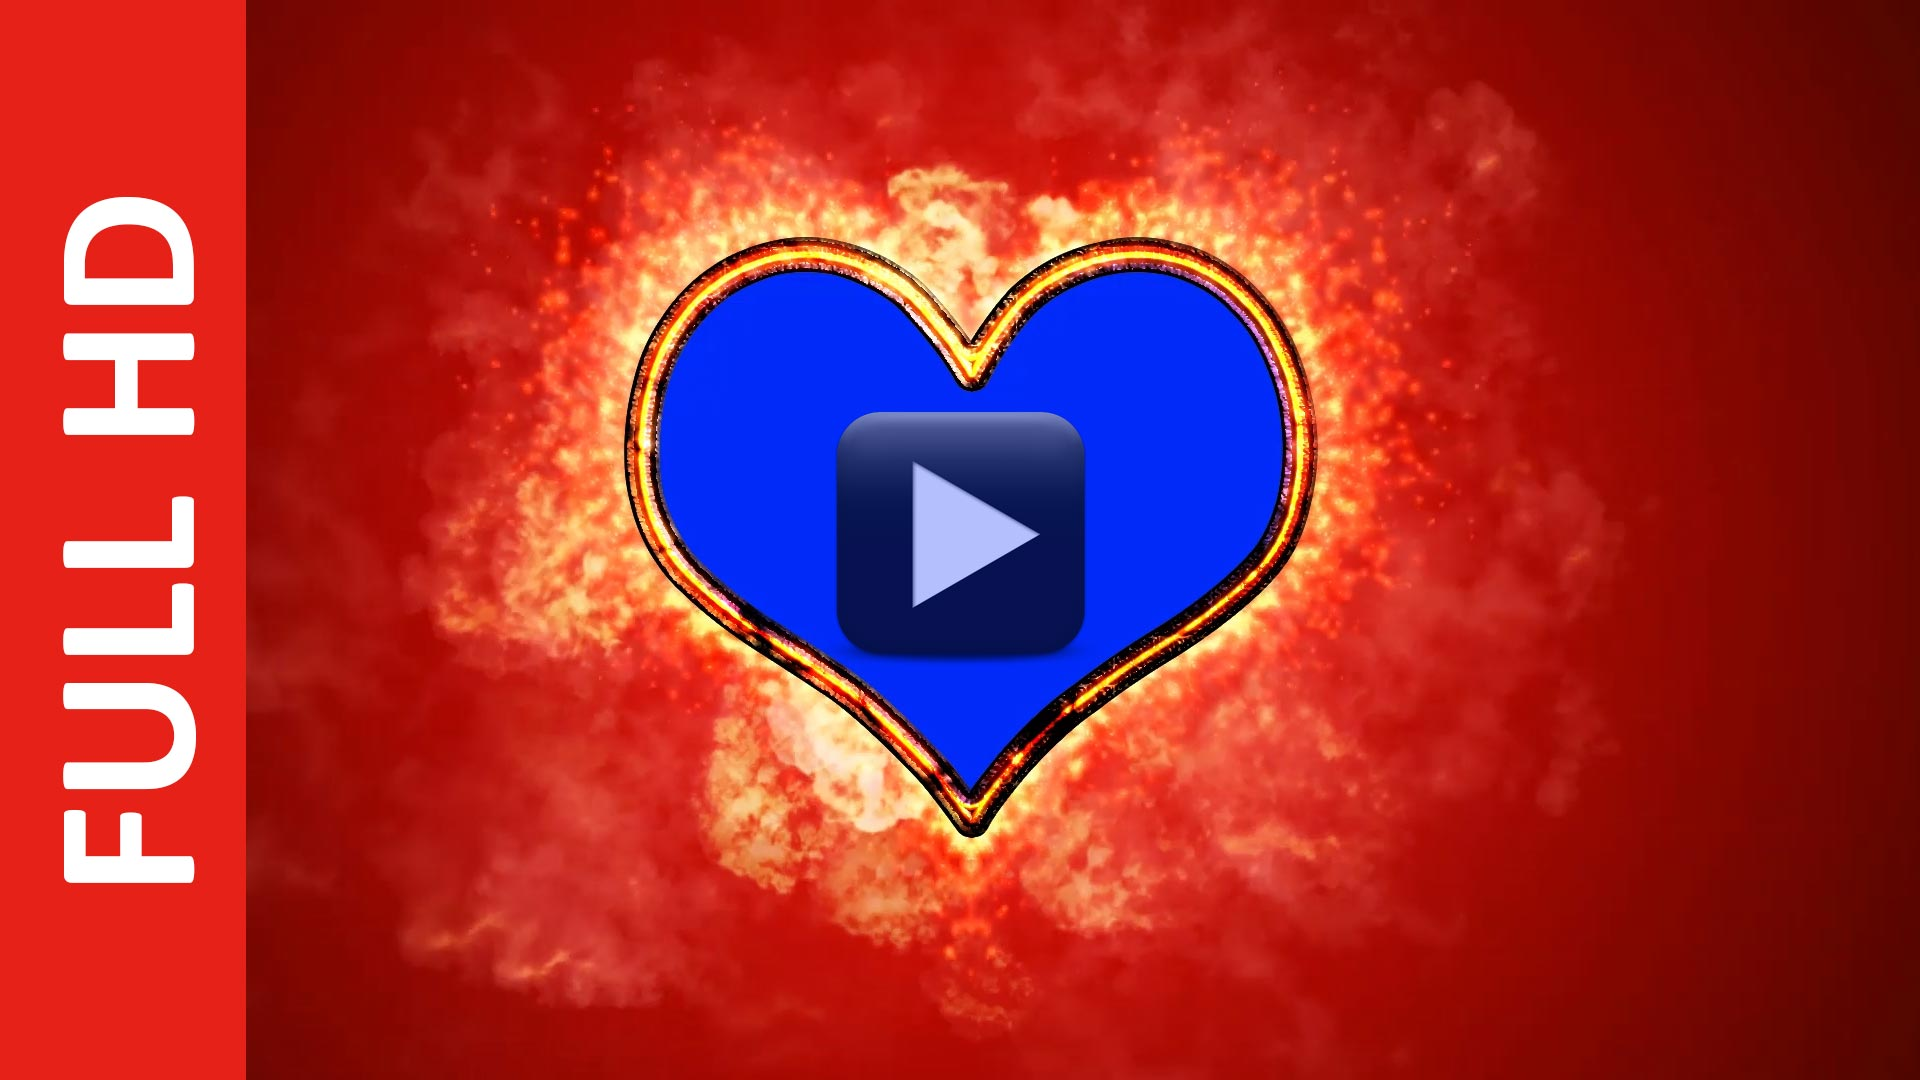 Burning Heart Fire Effect Wedding Motion Graphics in Blue Screen